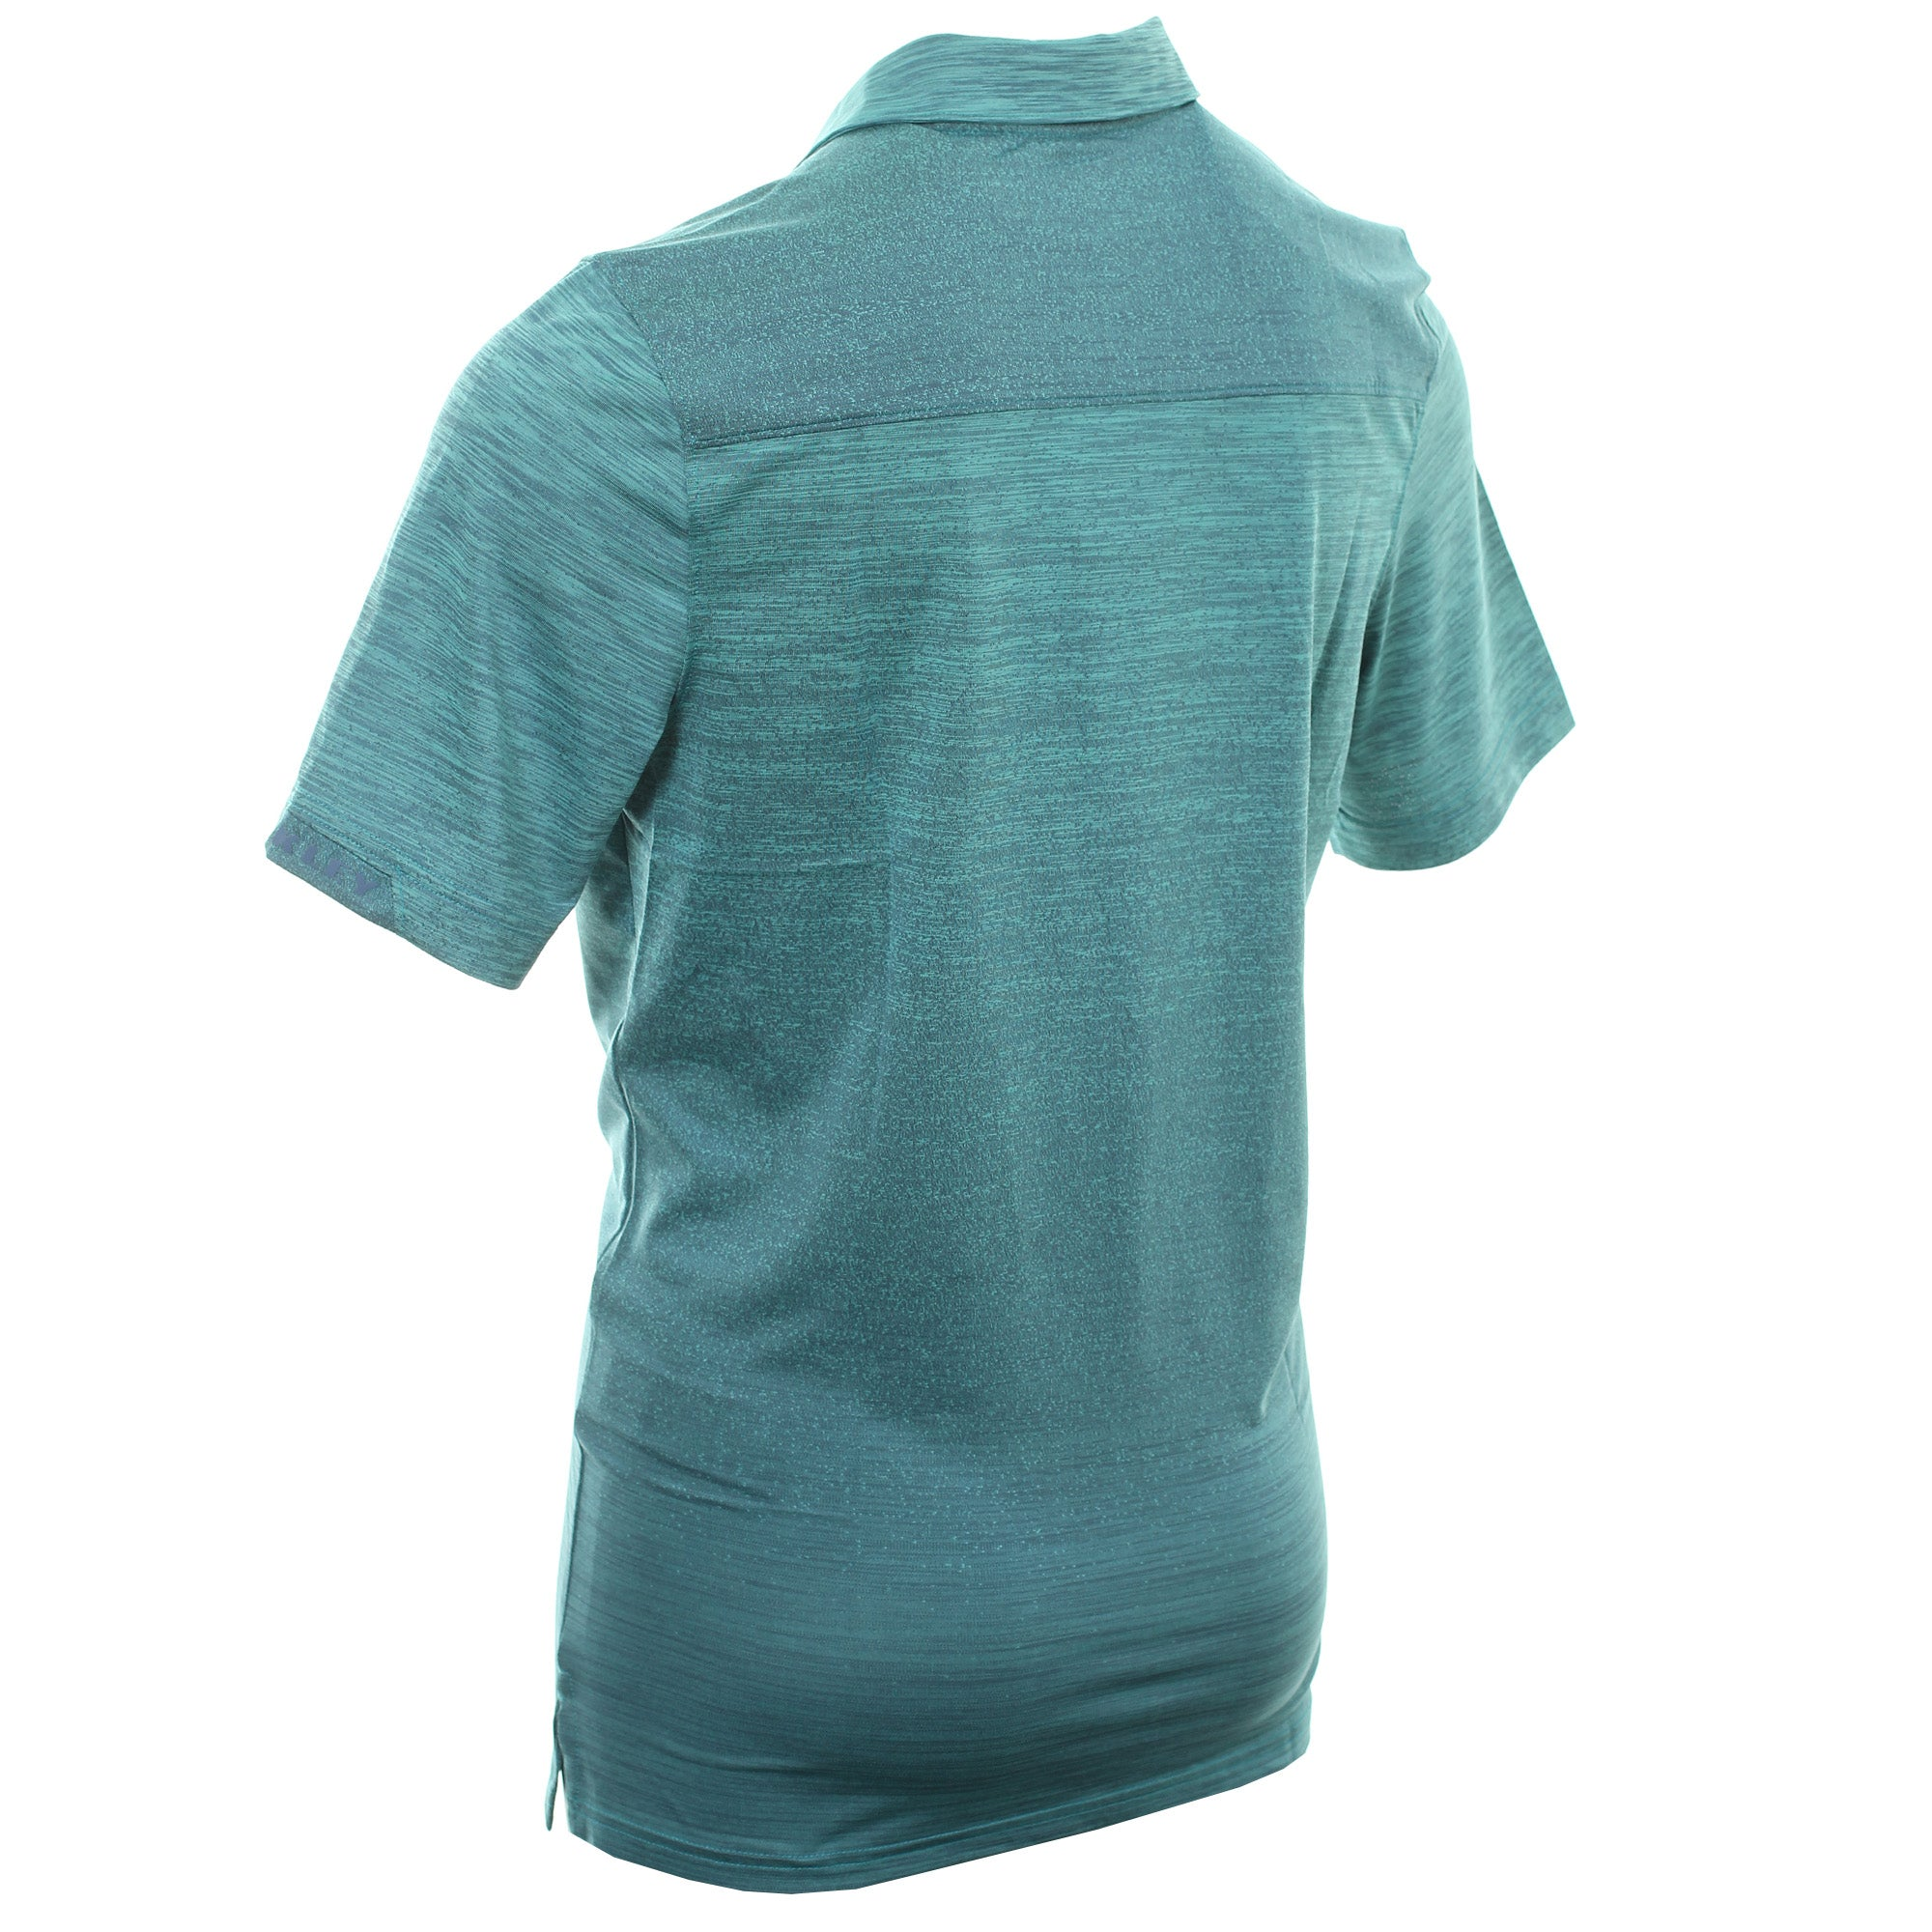 Oakley Golf Gradient Gravity Shirt 2.0